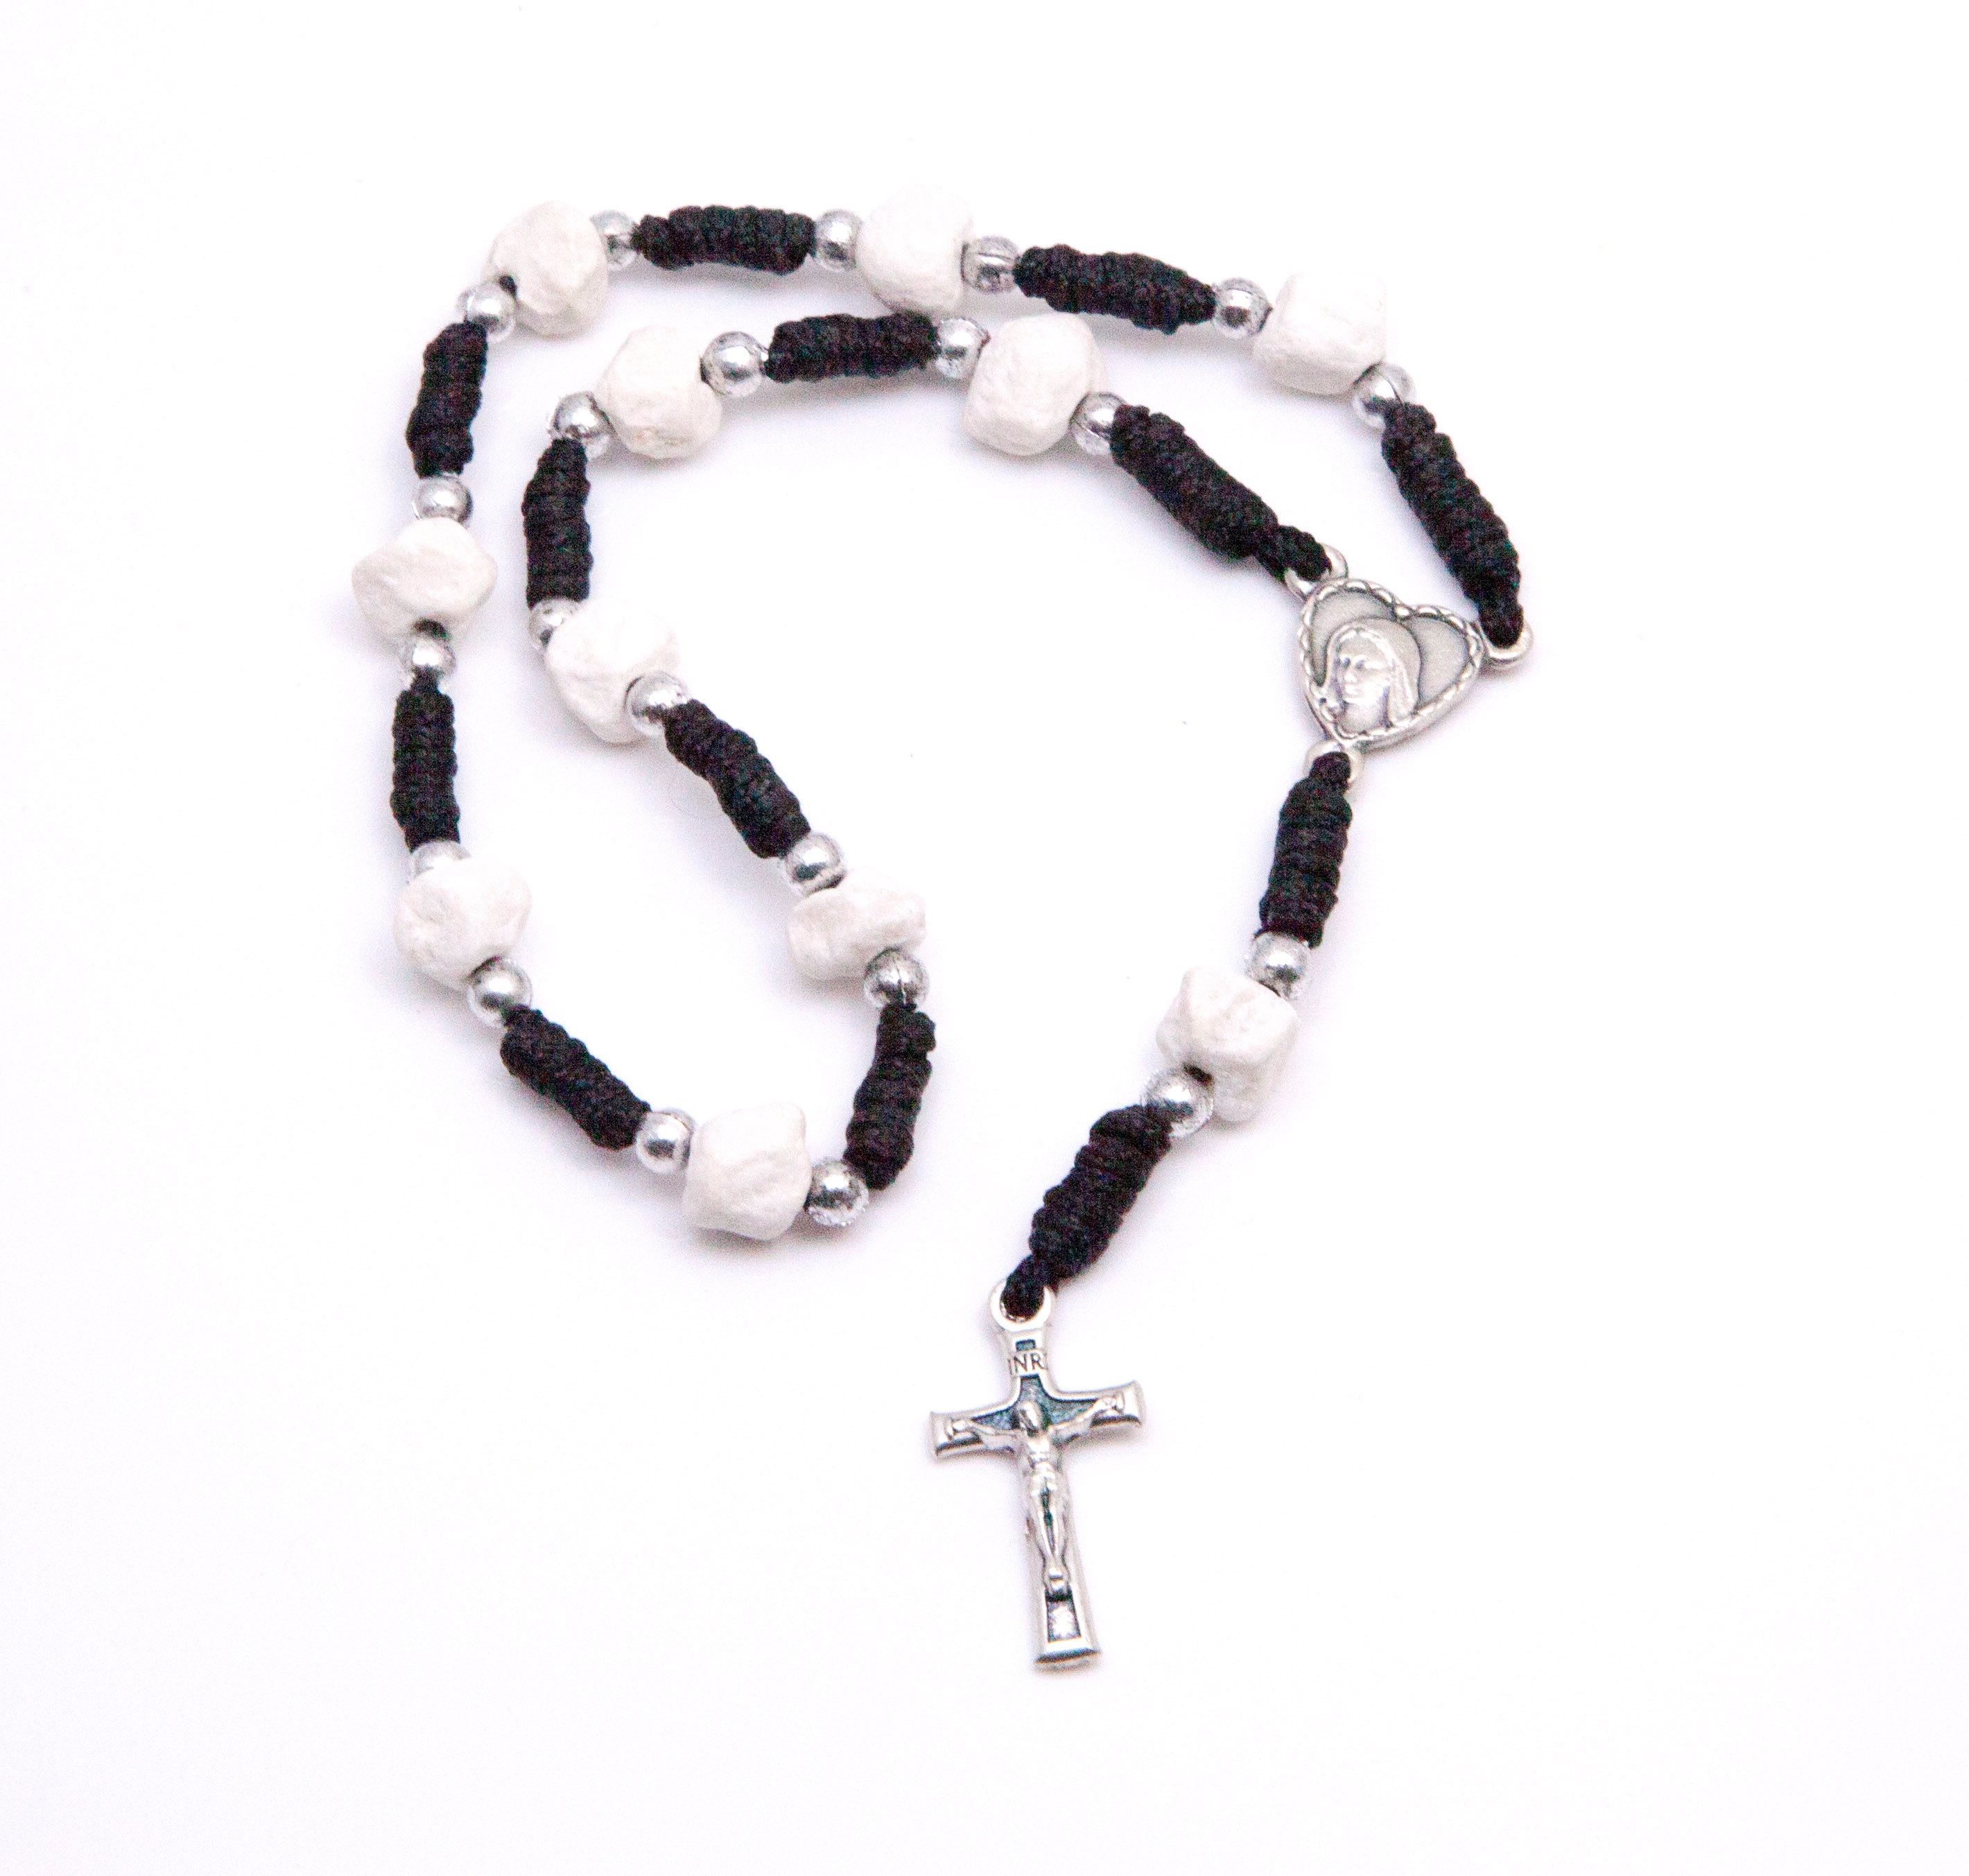 Medjugorje Stone One-Decade Rosary with Black Cord